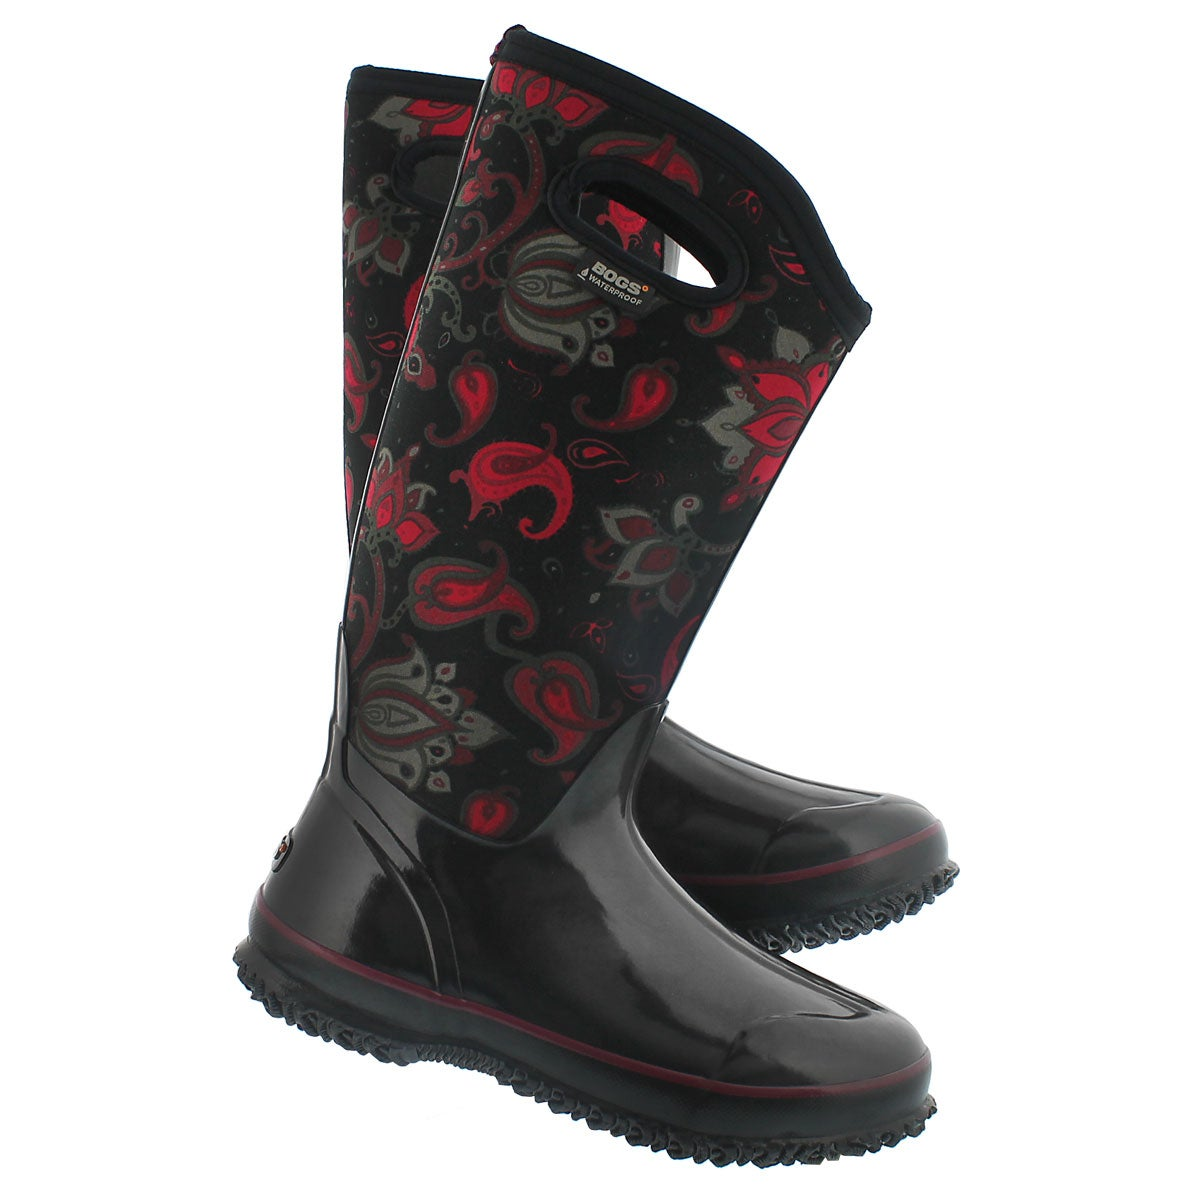 Lds ClassicPaisleyFloralTall blk wp boot